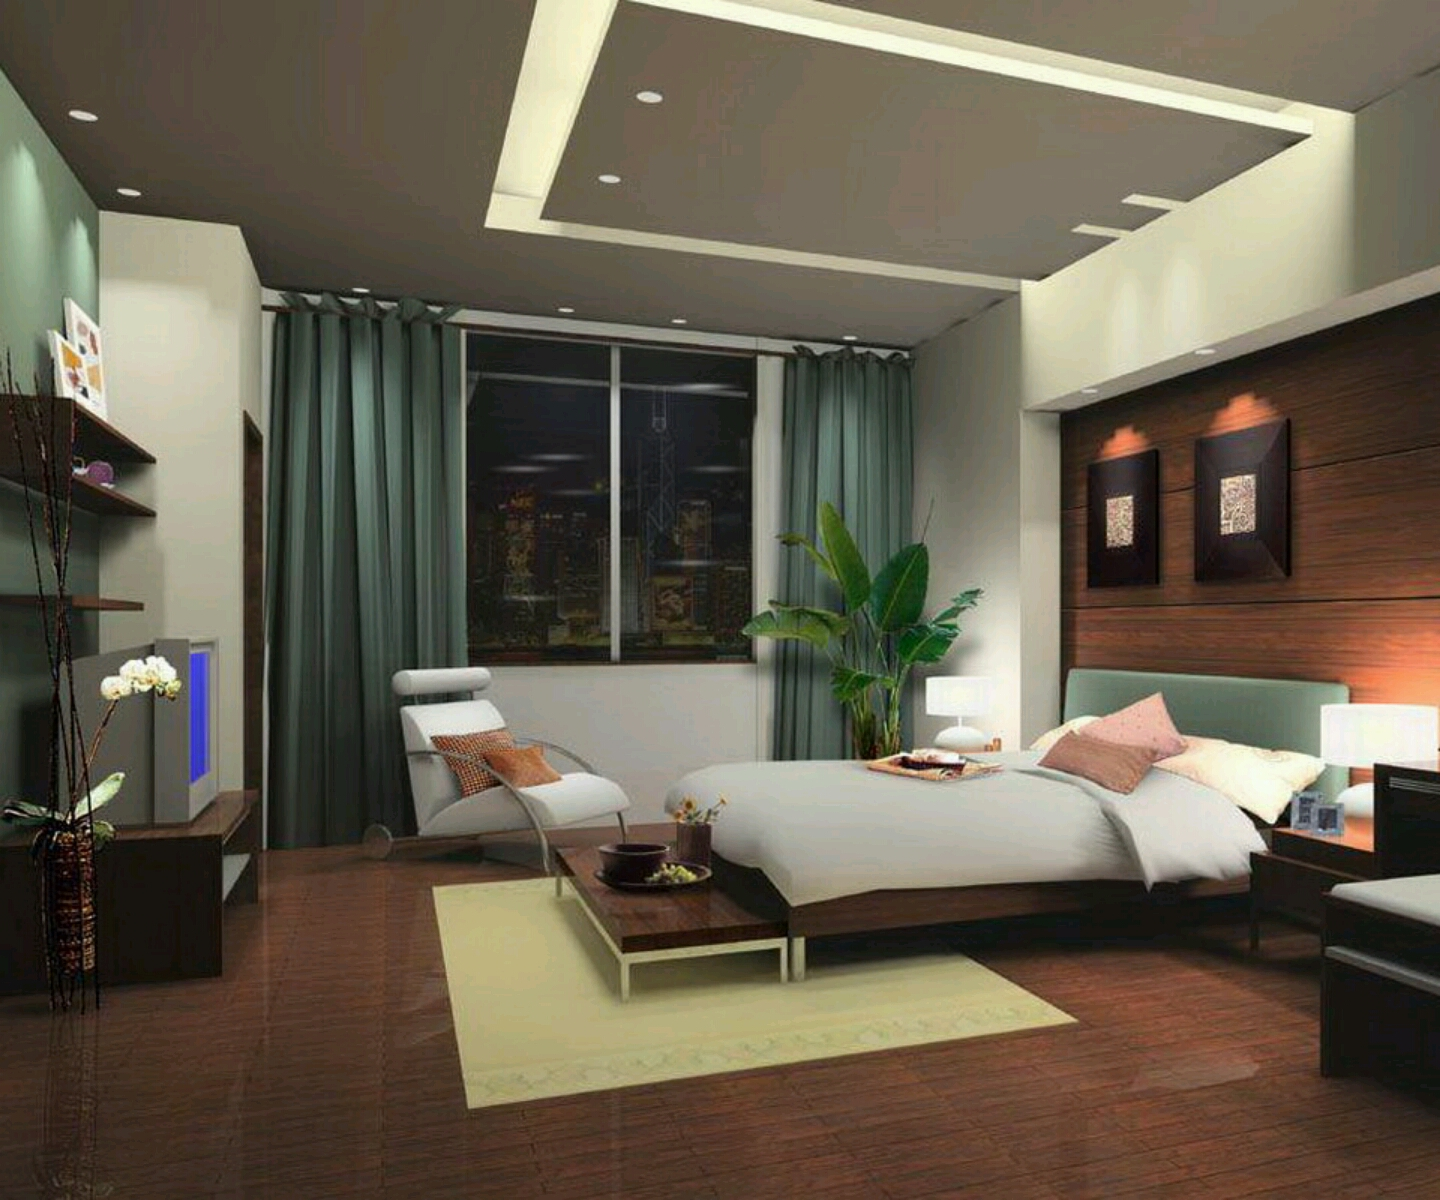 New home designs latest modern bedrooms designs best ideas - Latest design of bedroom ...